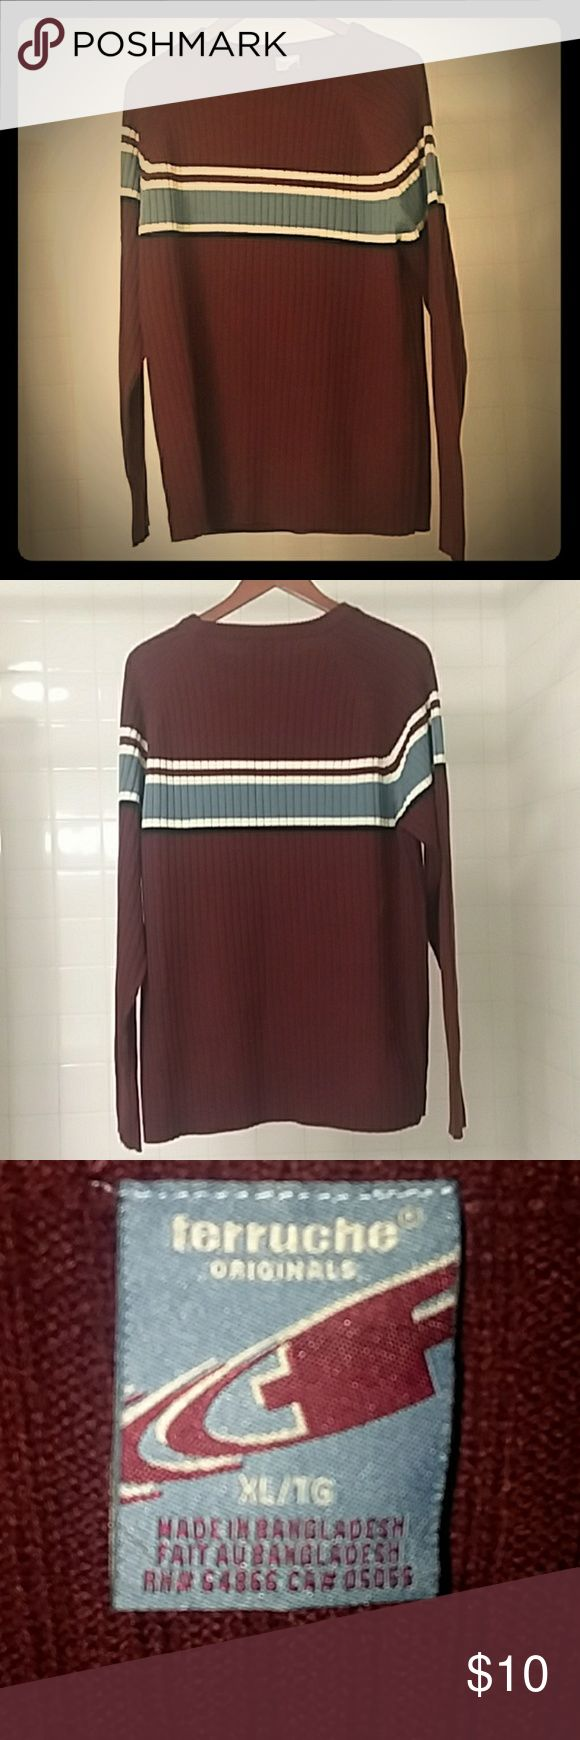 Mens 90s sweater The 90s and 00s are back in style! Authentic and excellent condition burgundy sweater with a light blue stripe. ferruche Sweaters